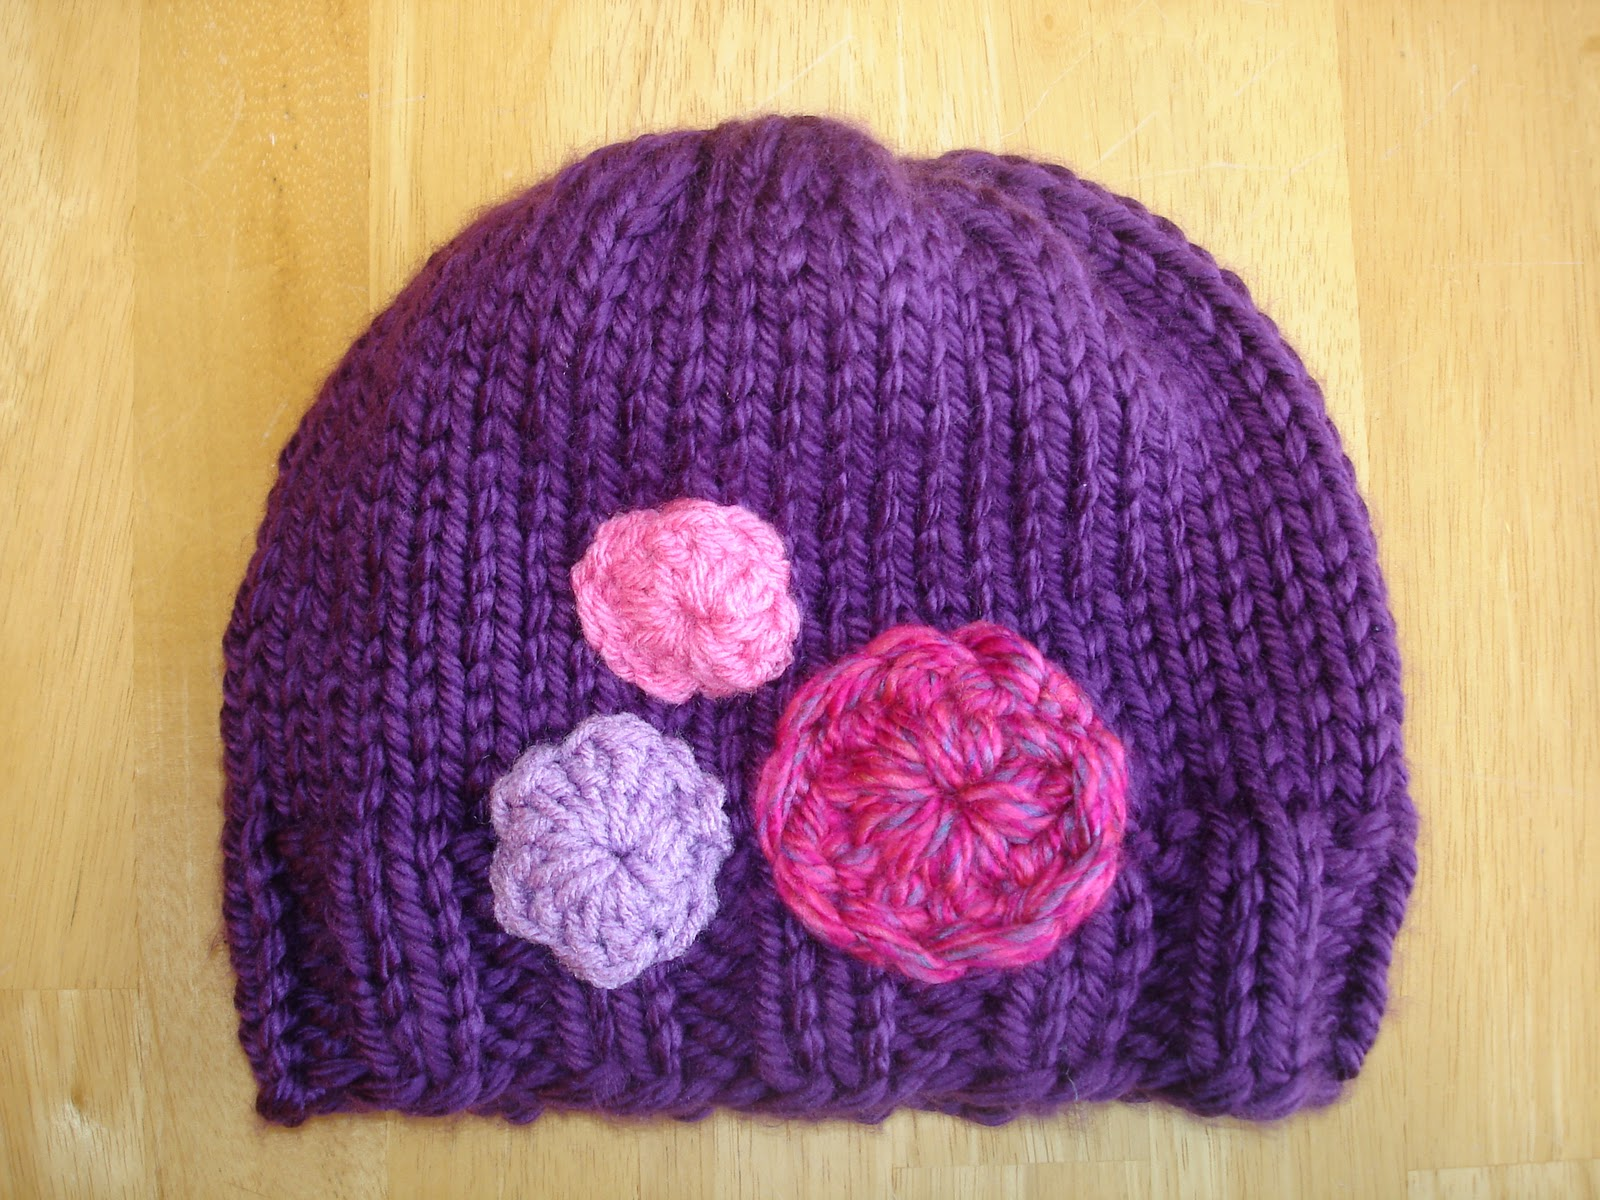 Knitting Patterns Child Hats Free : Fiber Flux: Free Knitting Pattern! Her Royal Highness Hat...